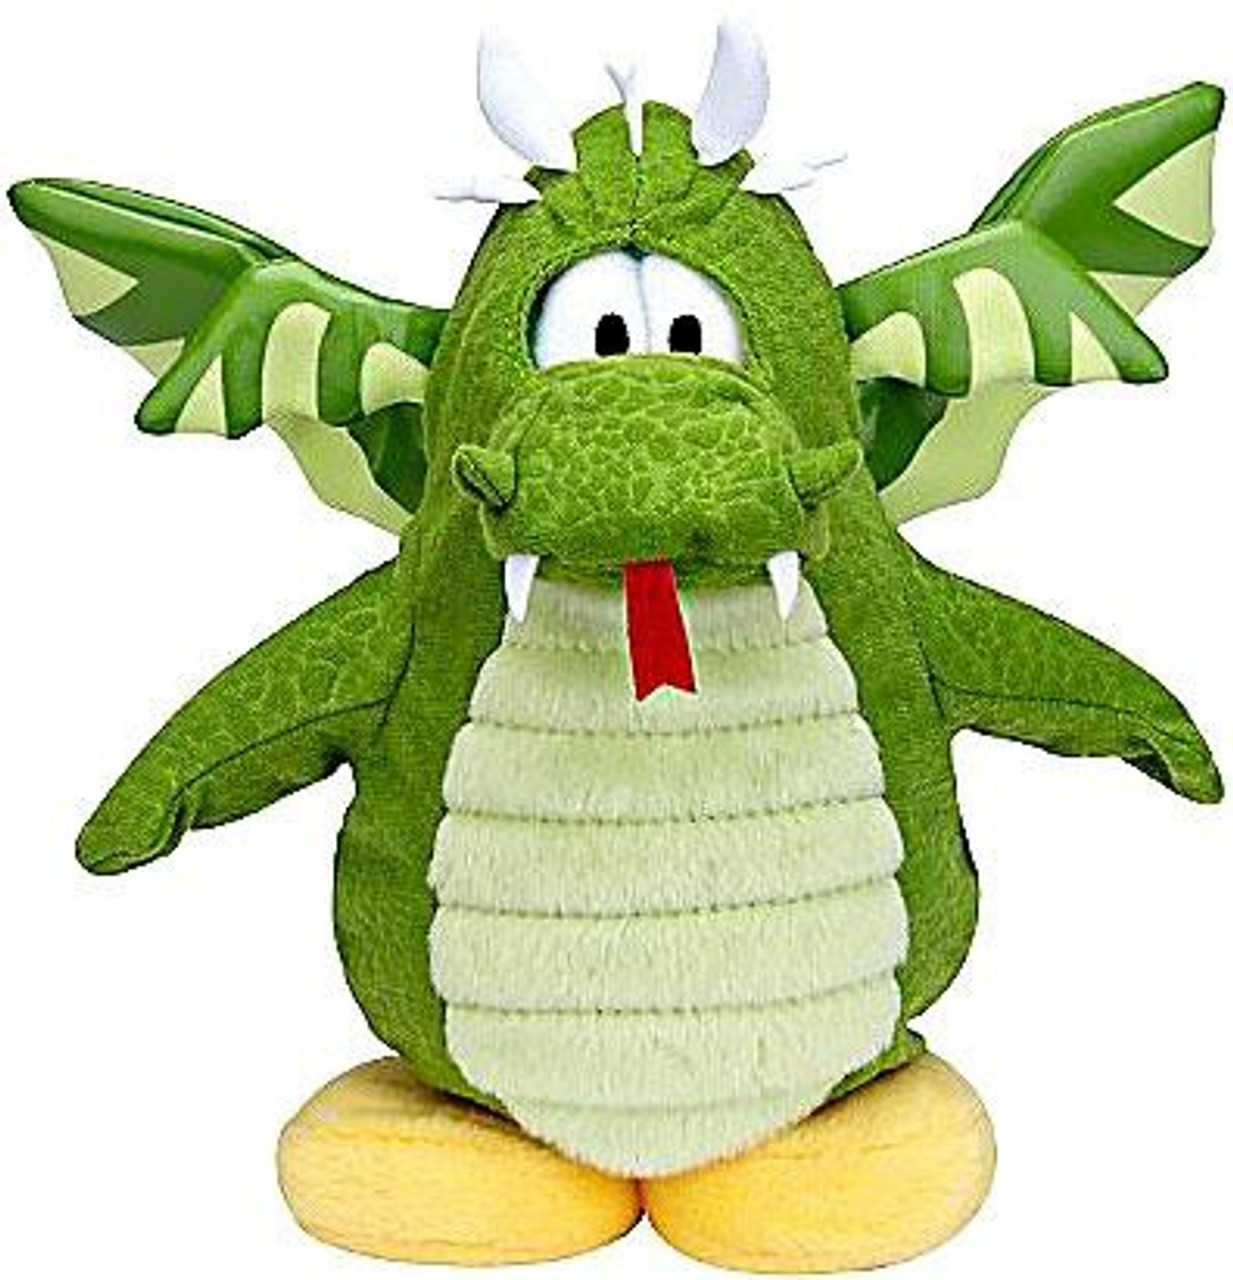 Club Penguin Series 6 Green Dragon 6.5-Inch Plush Figure [Version 2]